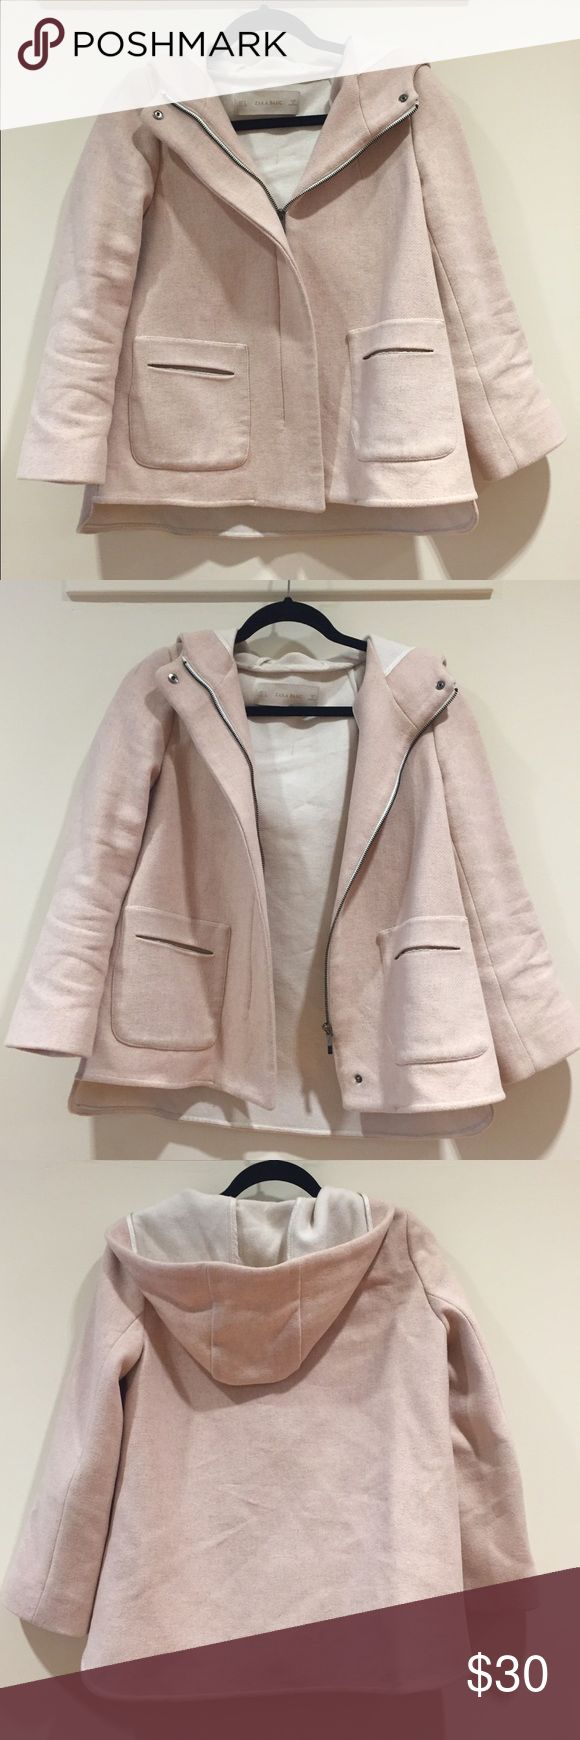 🌟 || Light Pink Zara Jacket short light pink jacket from zara. hood, two front pockets, full front zip with top and bottom snap button, wool/polyamide/acrylic exterior, lined. Zara Jackets & Coats